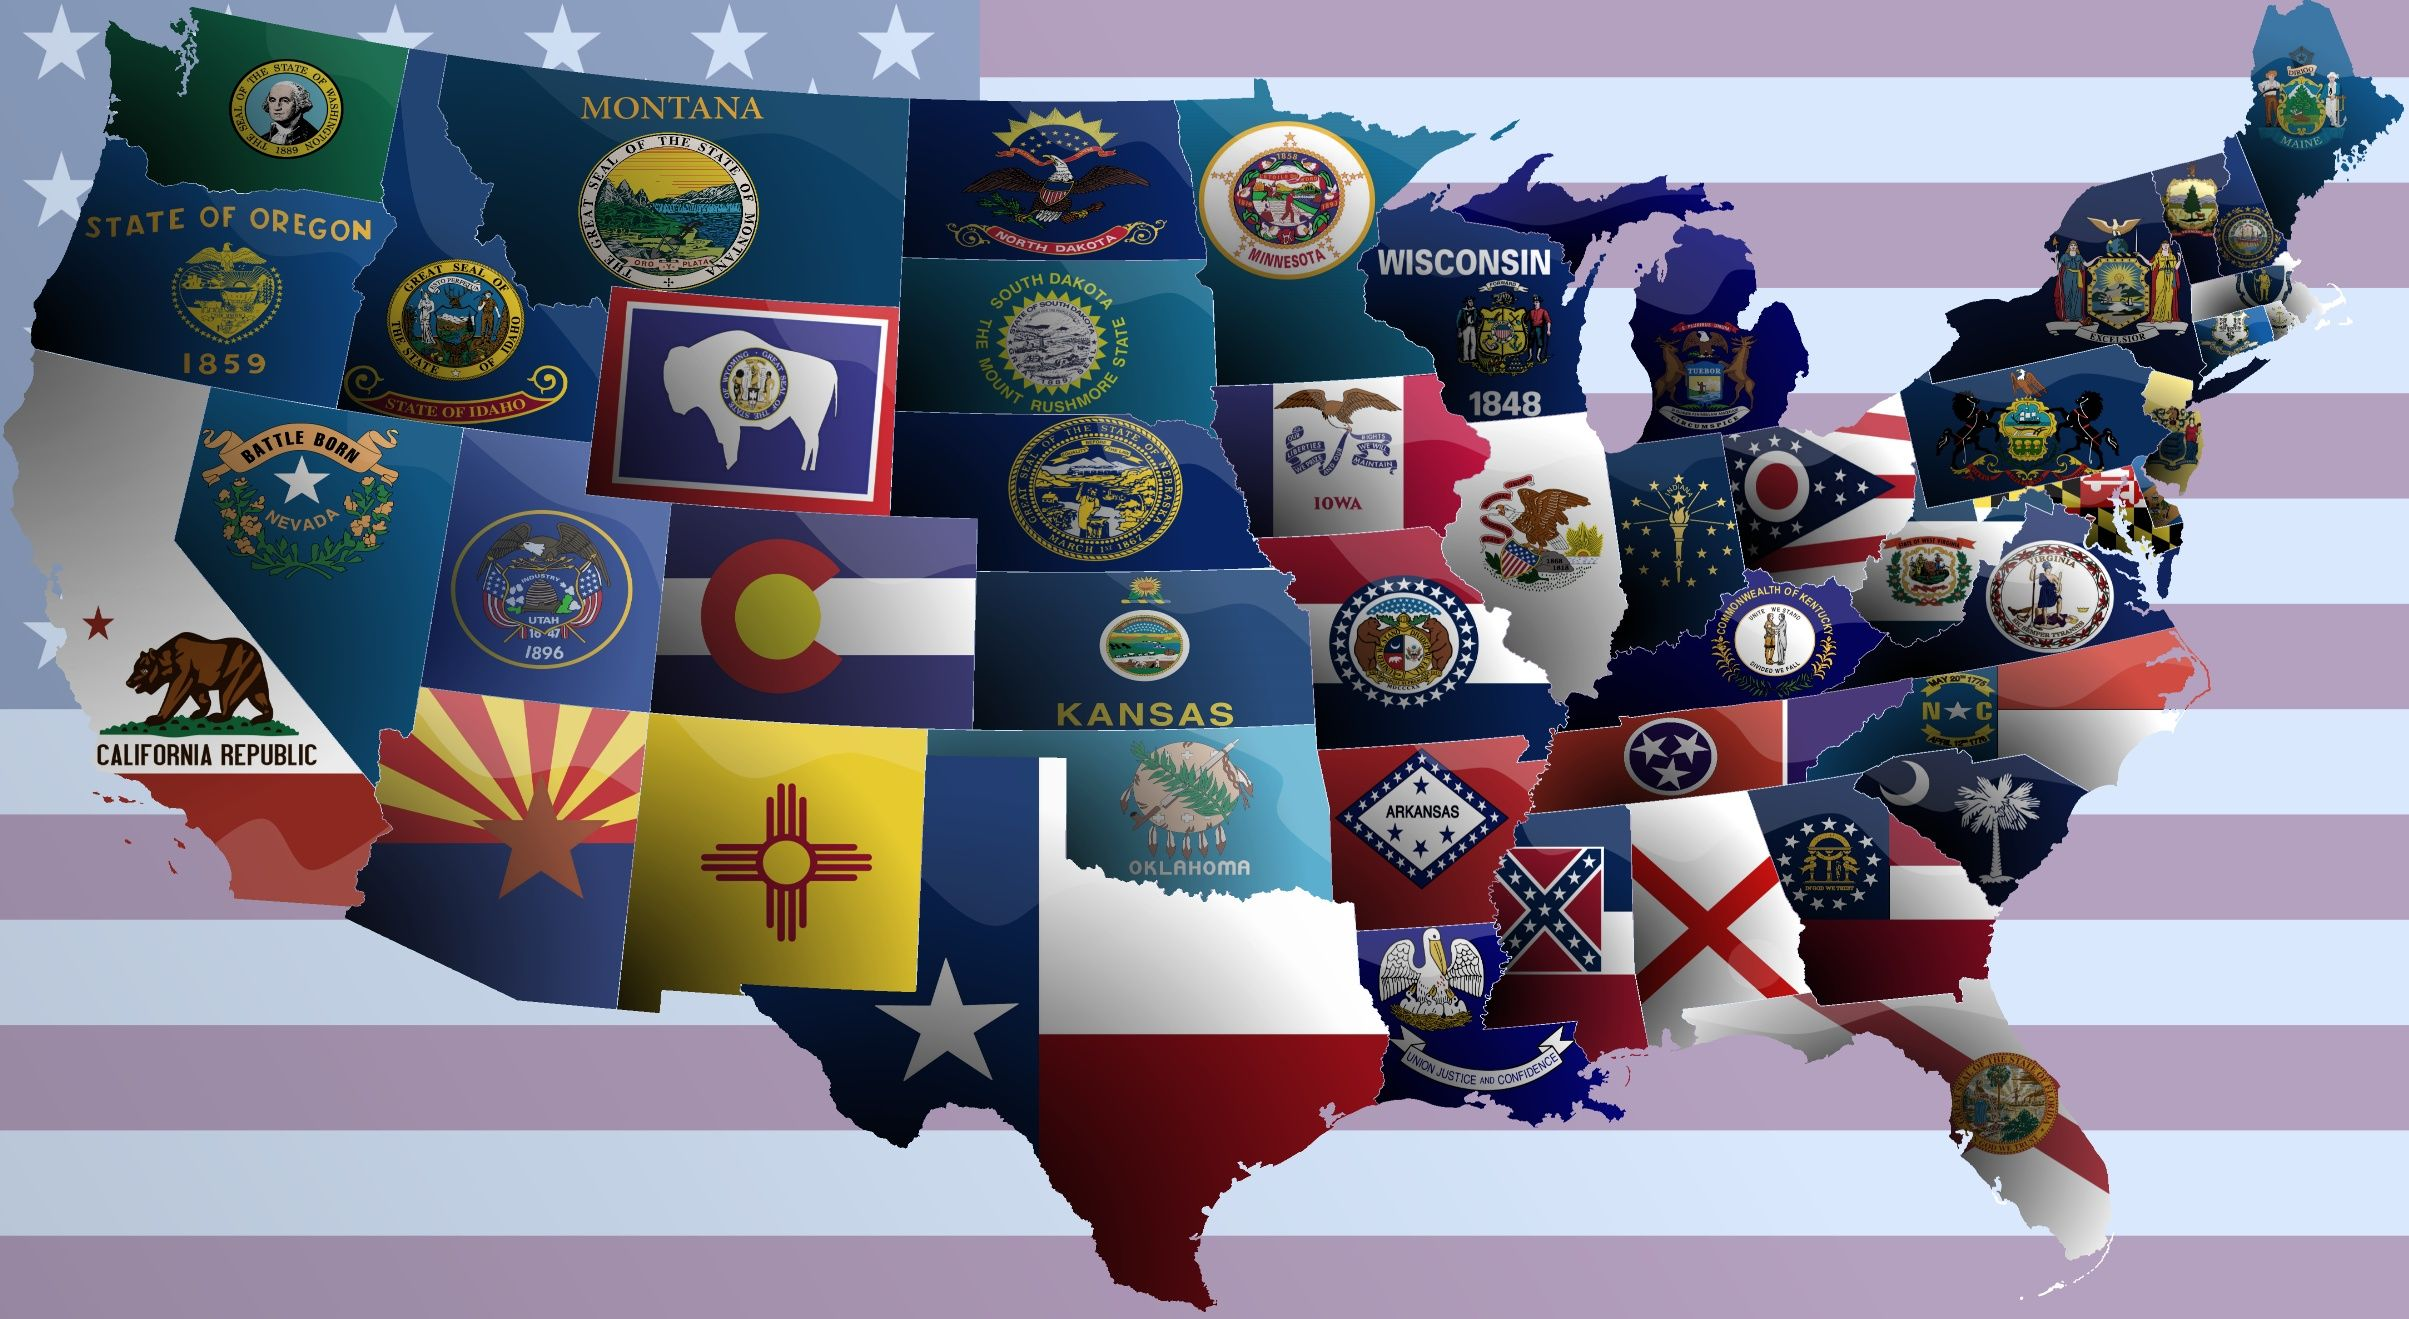 United States Of America Flag Map By Jaysimons On Deviantart - American-flag-us-map